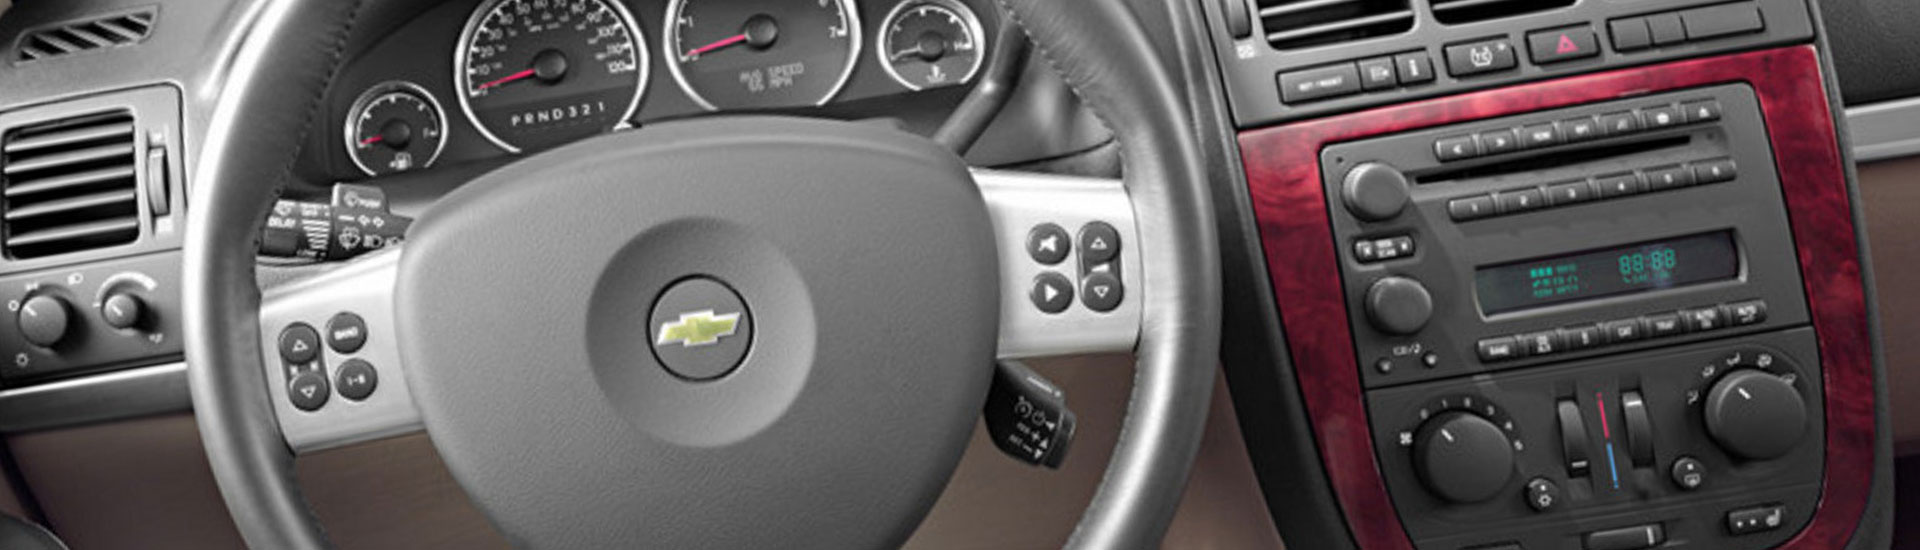 Chevrolet Uplander Dash Kits